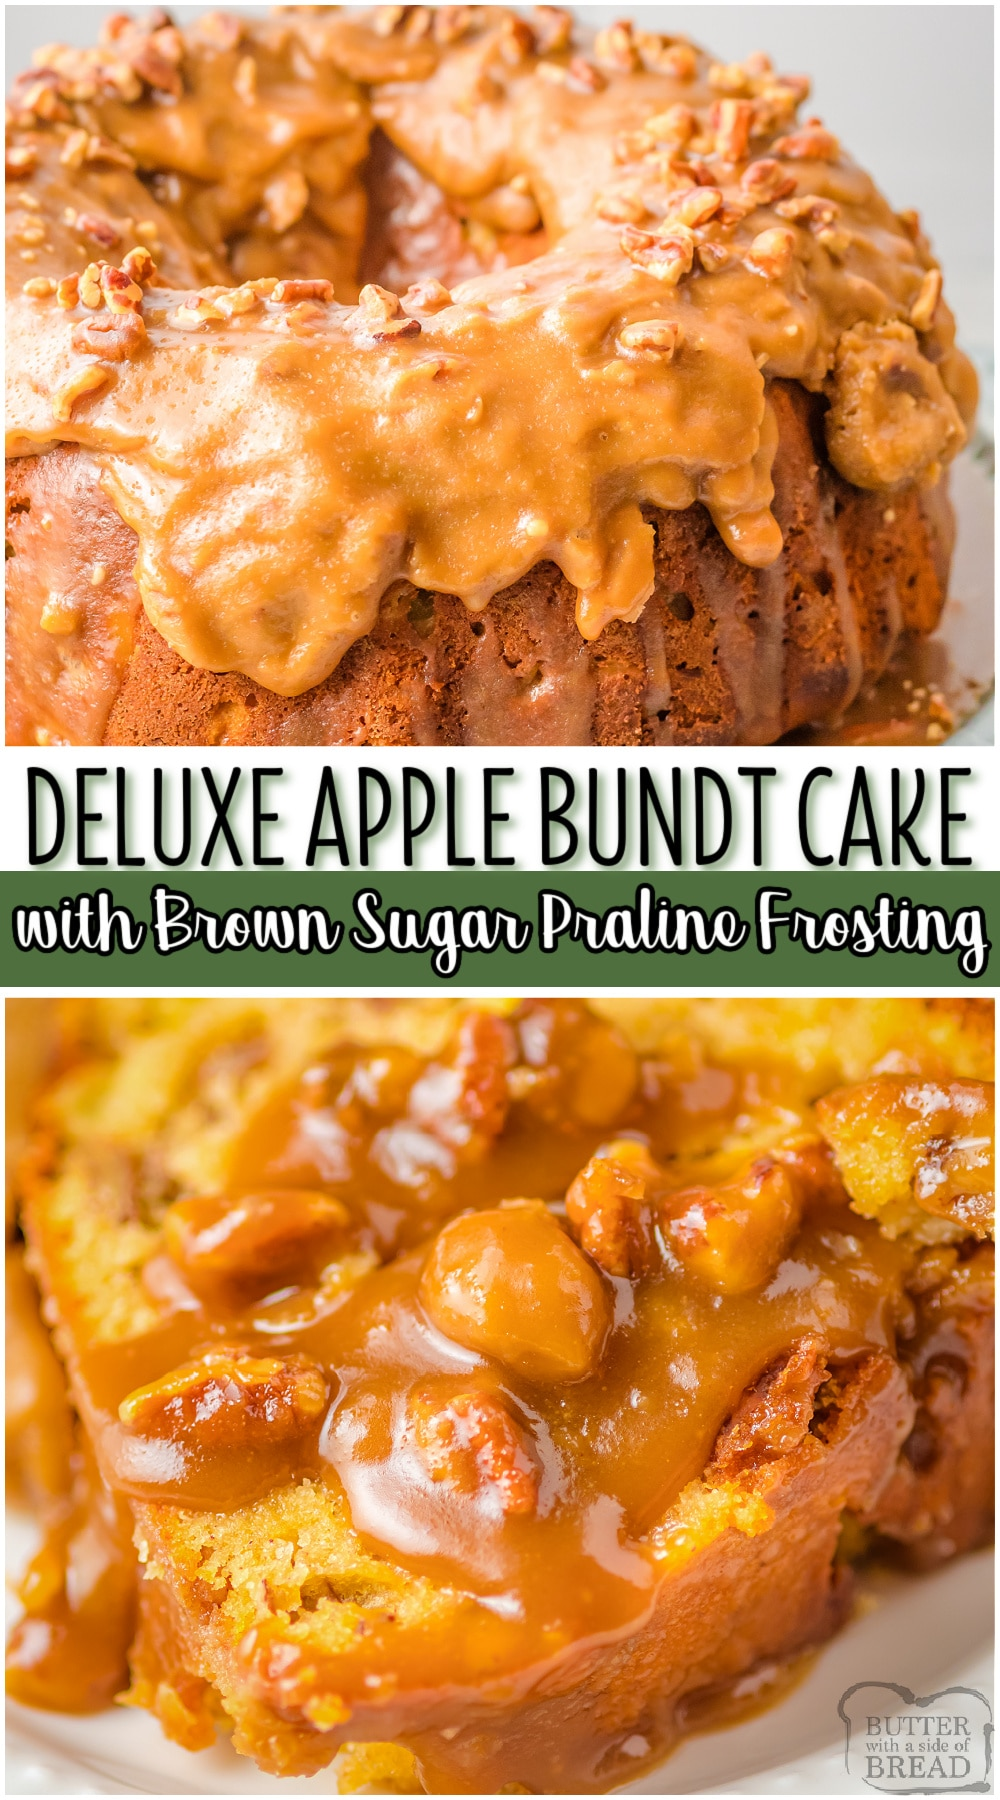 Praline Apple bundt cake is made with applesauce, fresh apples & a lovely blend of Fall spices. Delicious apple cake topped with a praline frosting made with butter, brown sugar and pecans. #cake #applecake #bundt #praline #frosting #easyrecipe from BUTTER WITH A SIDE OF BREAD